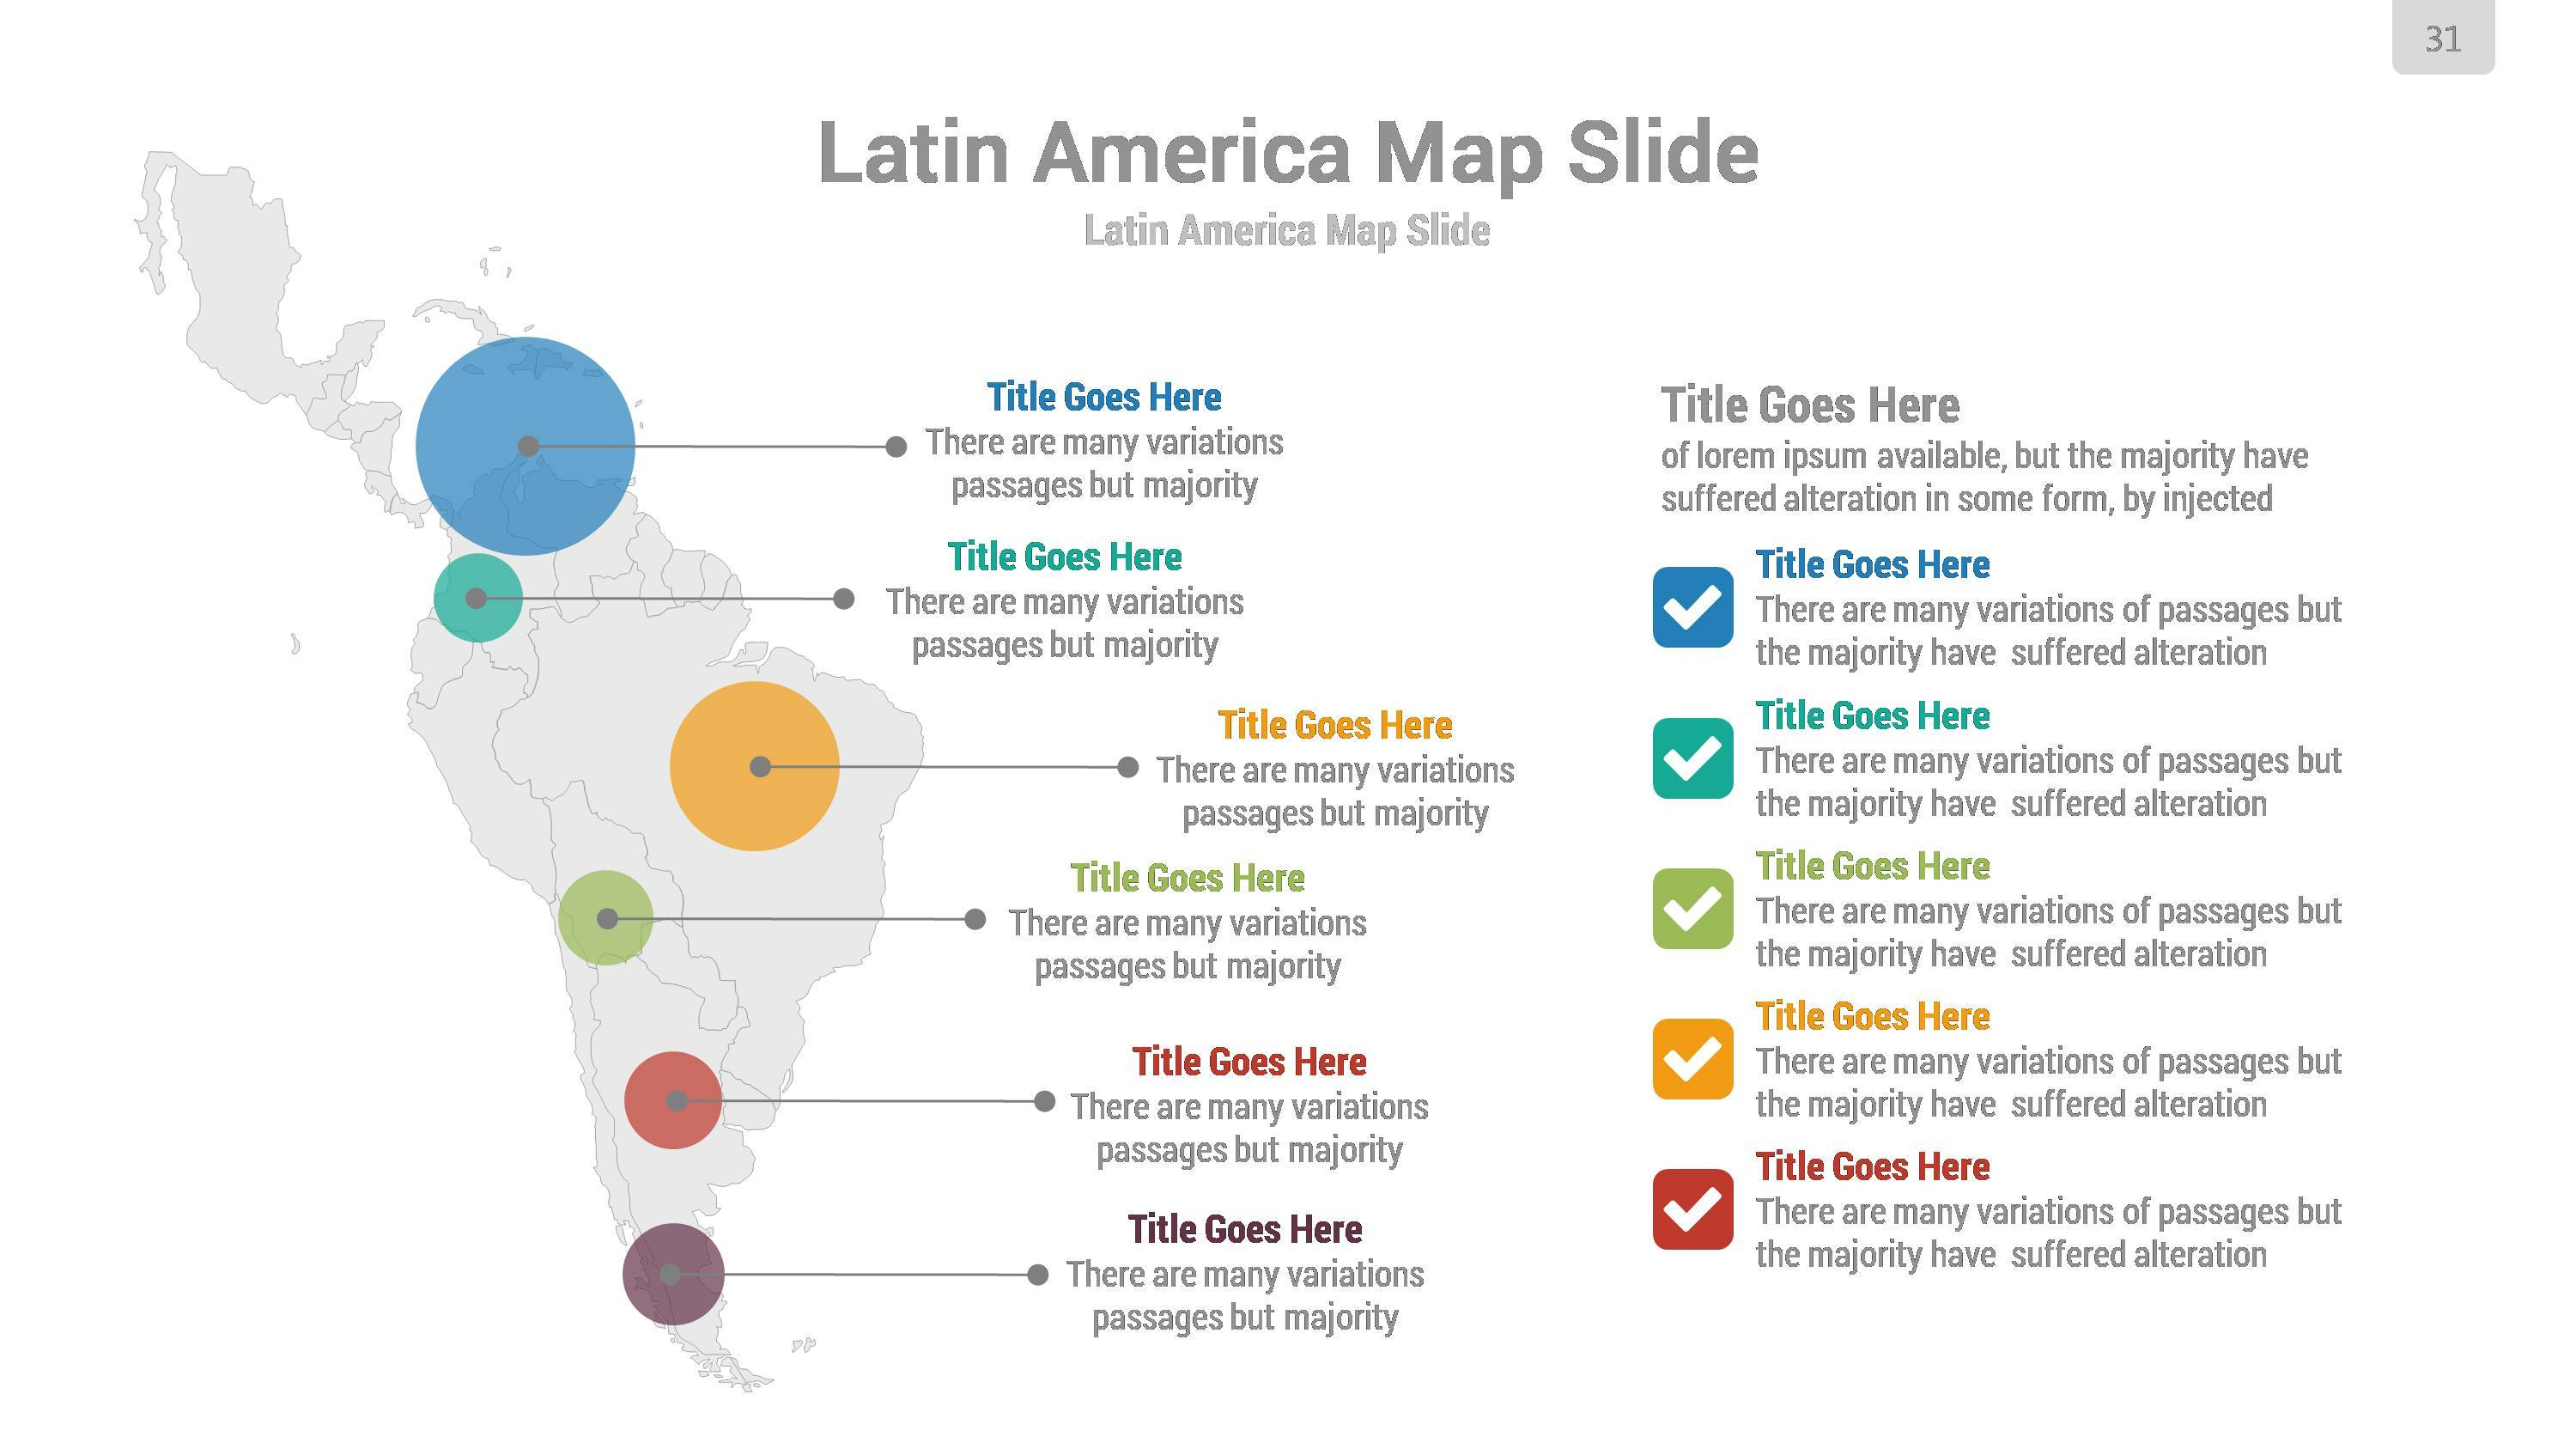 Americas Maps PowerPoint Presentation Template By Rojdark - Map of united states for powerpoint presentation